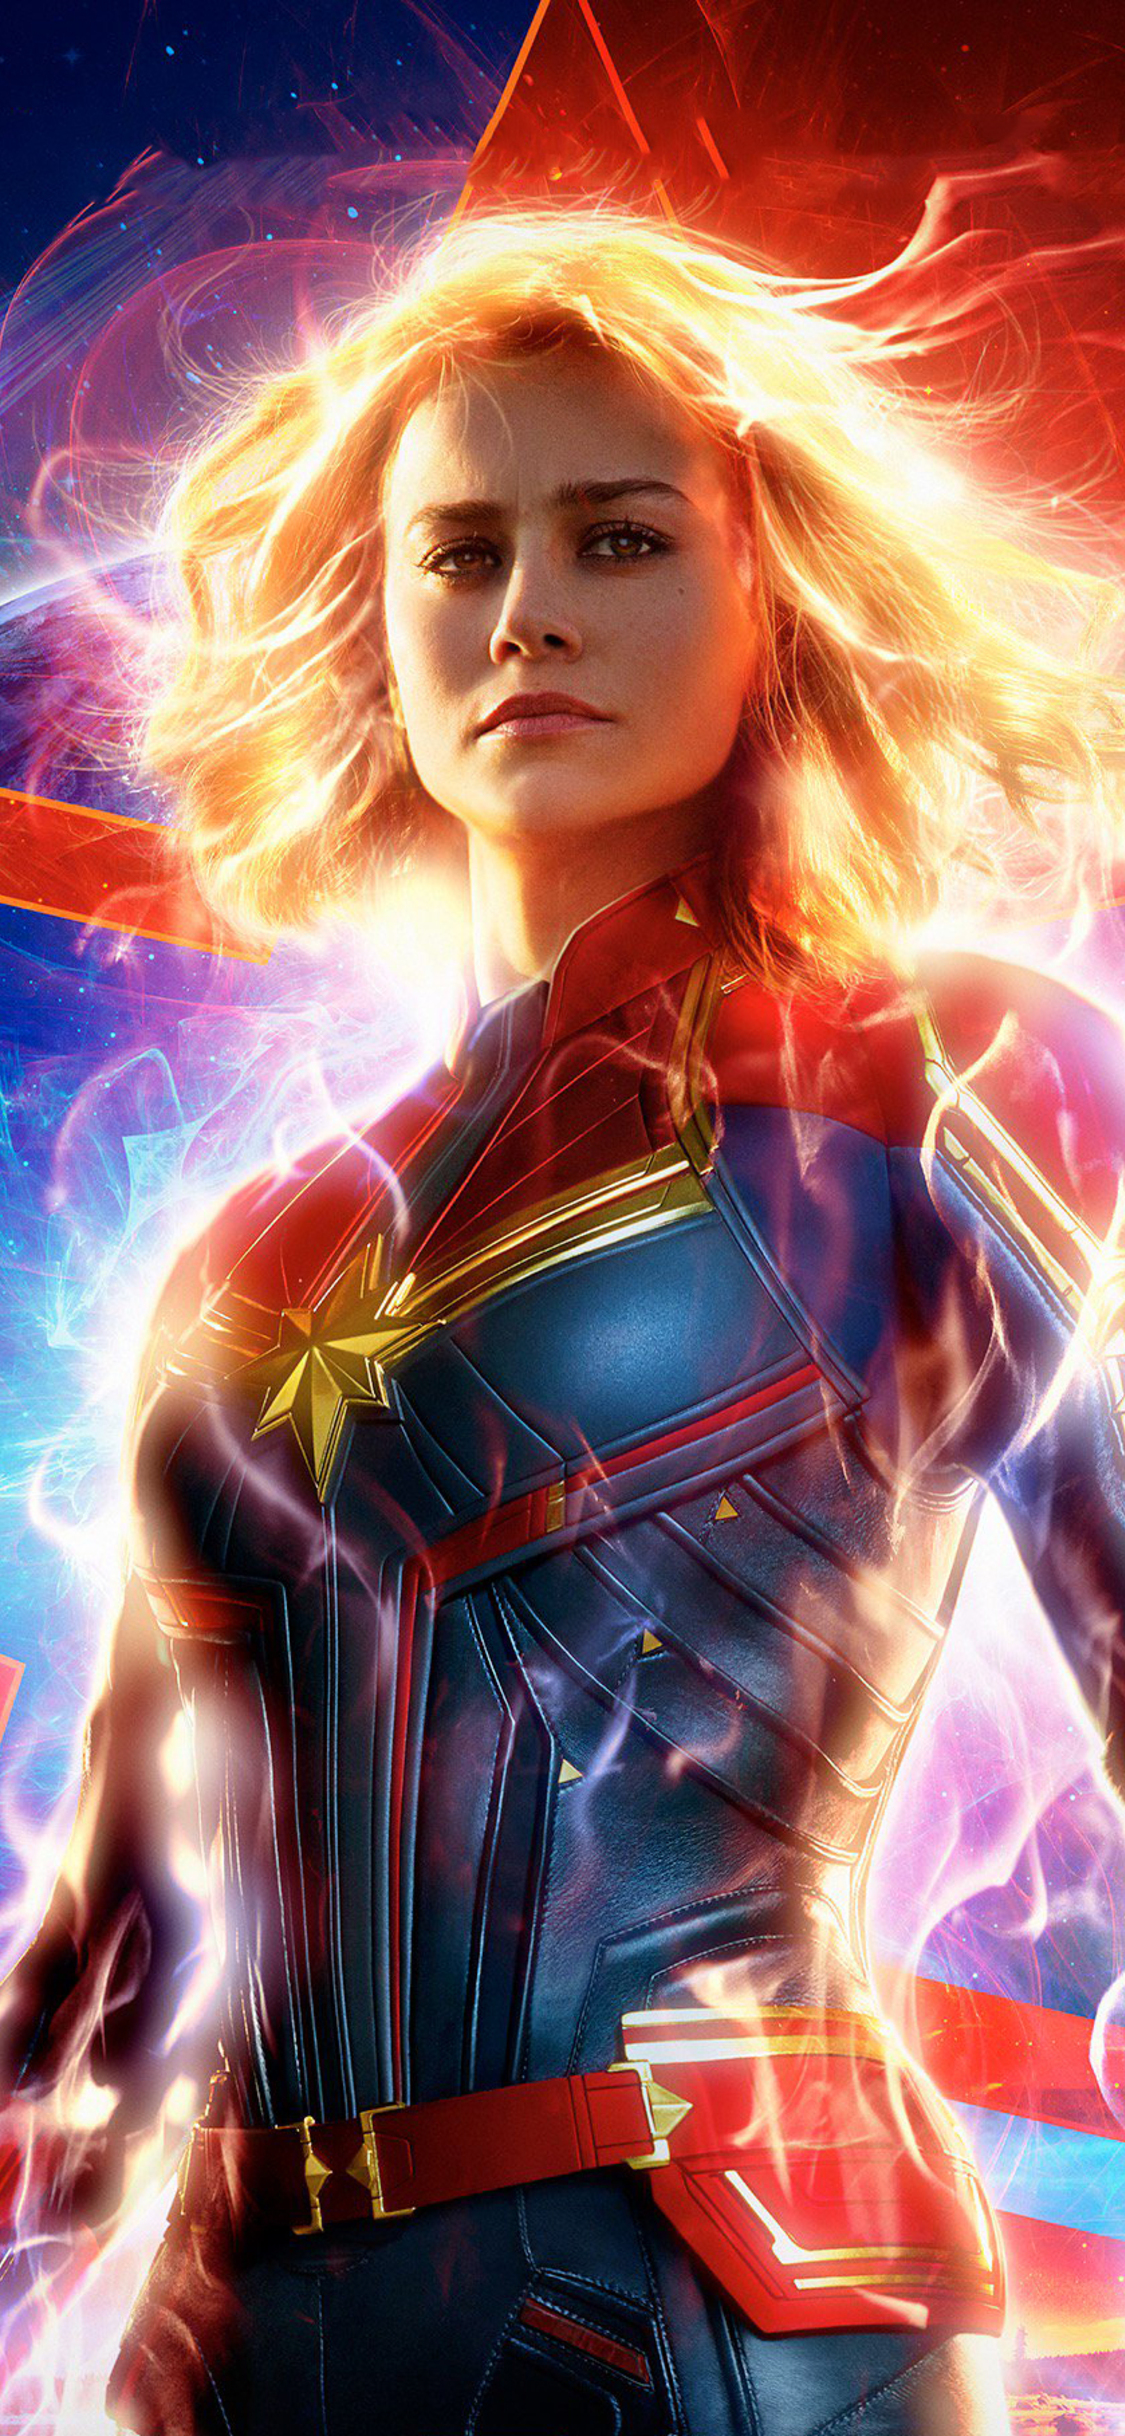 Captain marvel 2019 watch Hdts